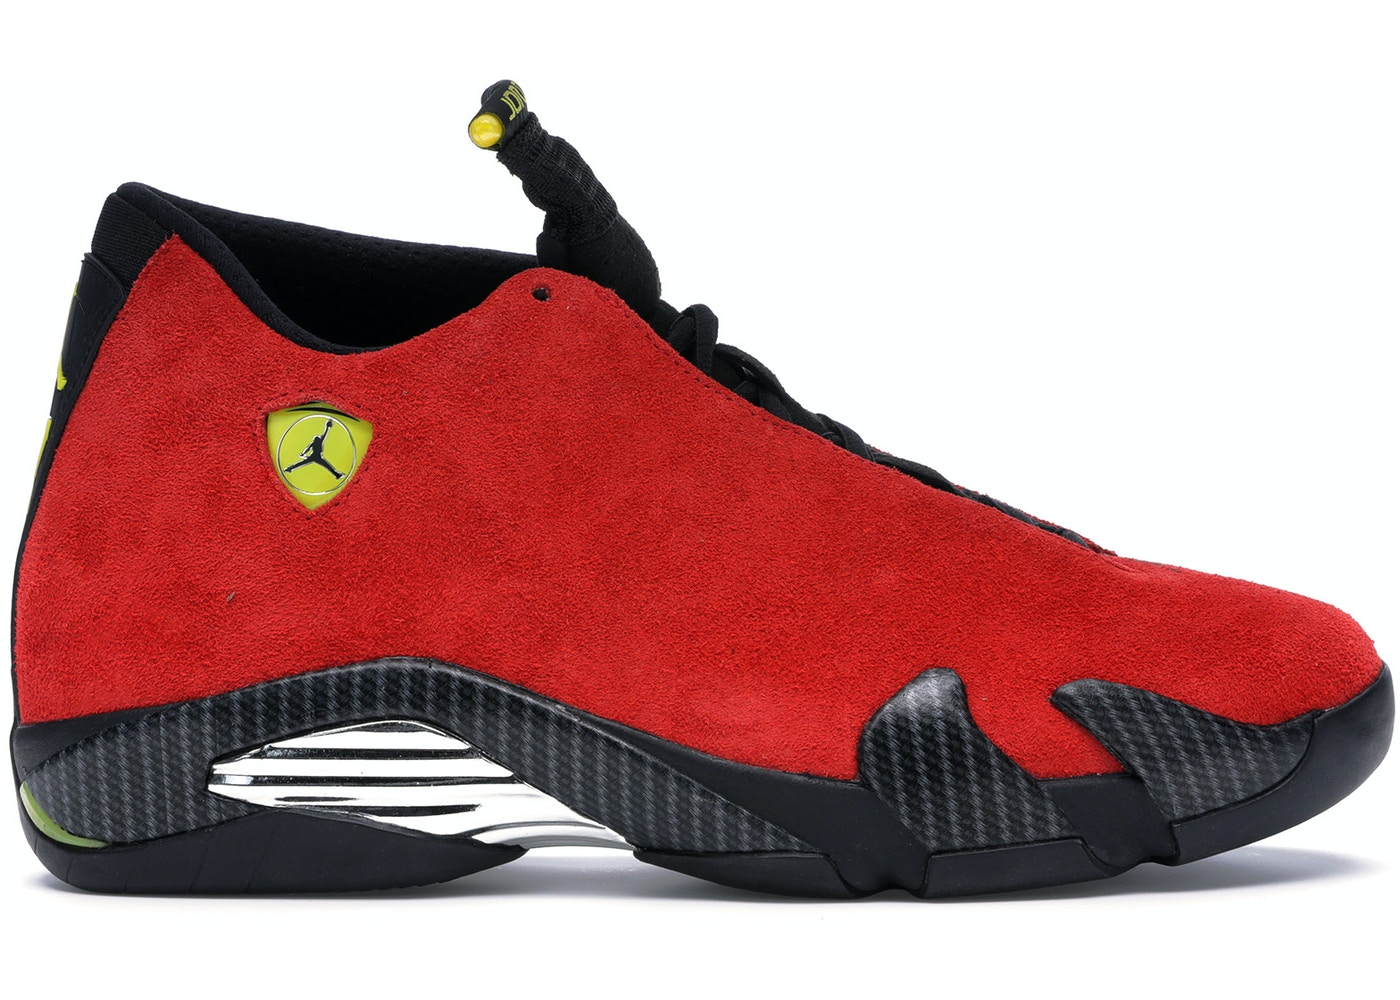 info for c278f 57a84 Buy Air Jordan 14 Shoes & Deadstock Sneakers